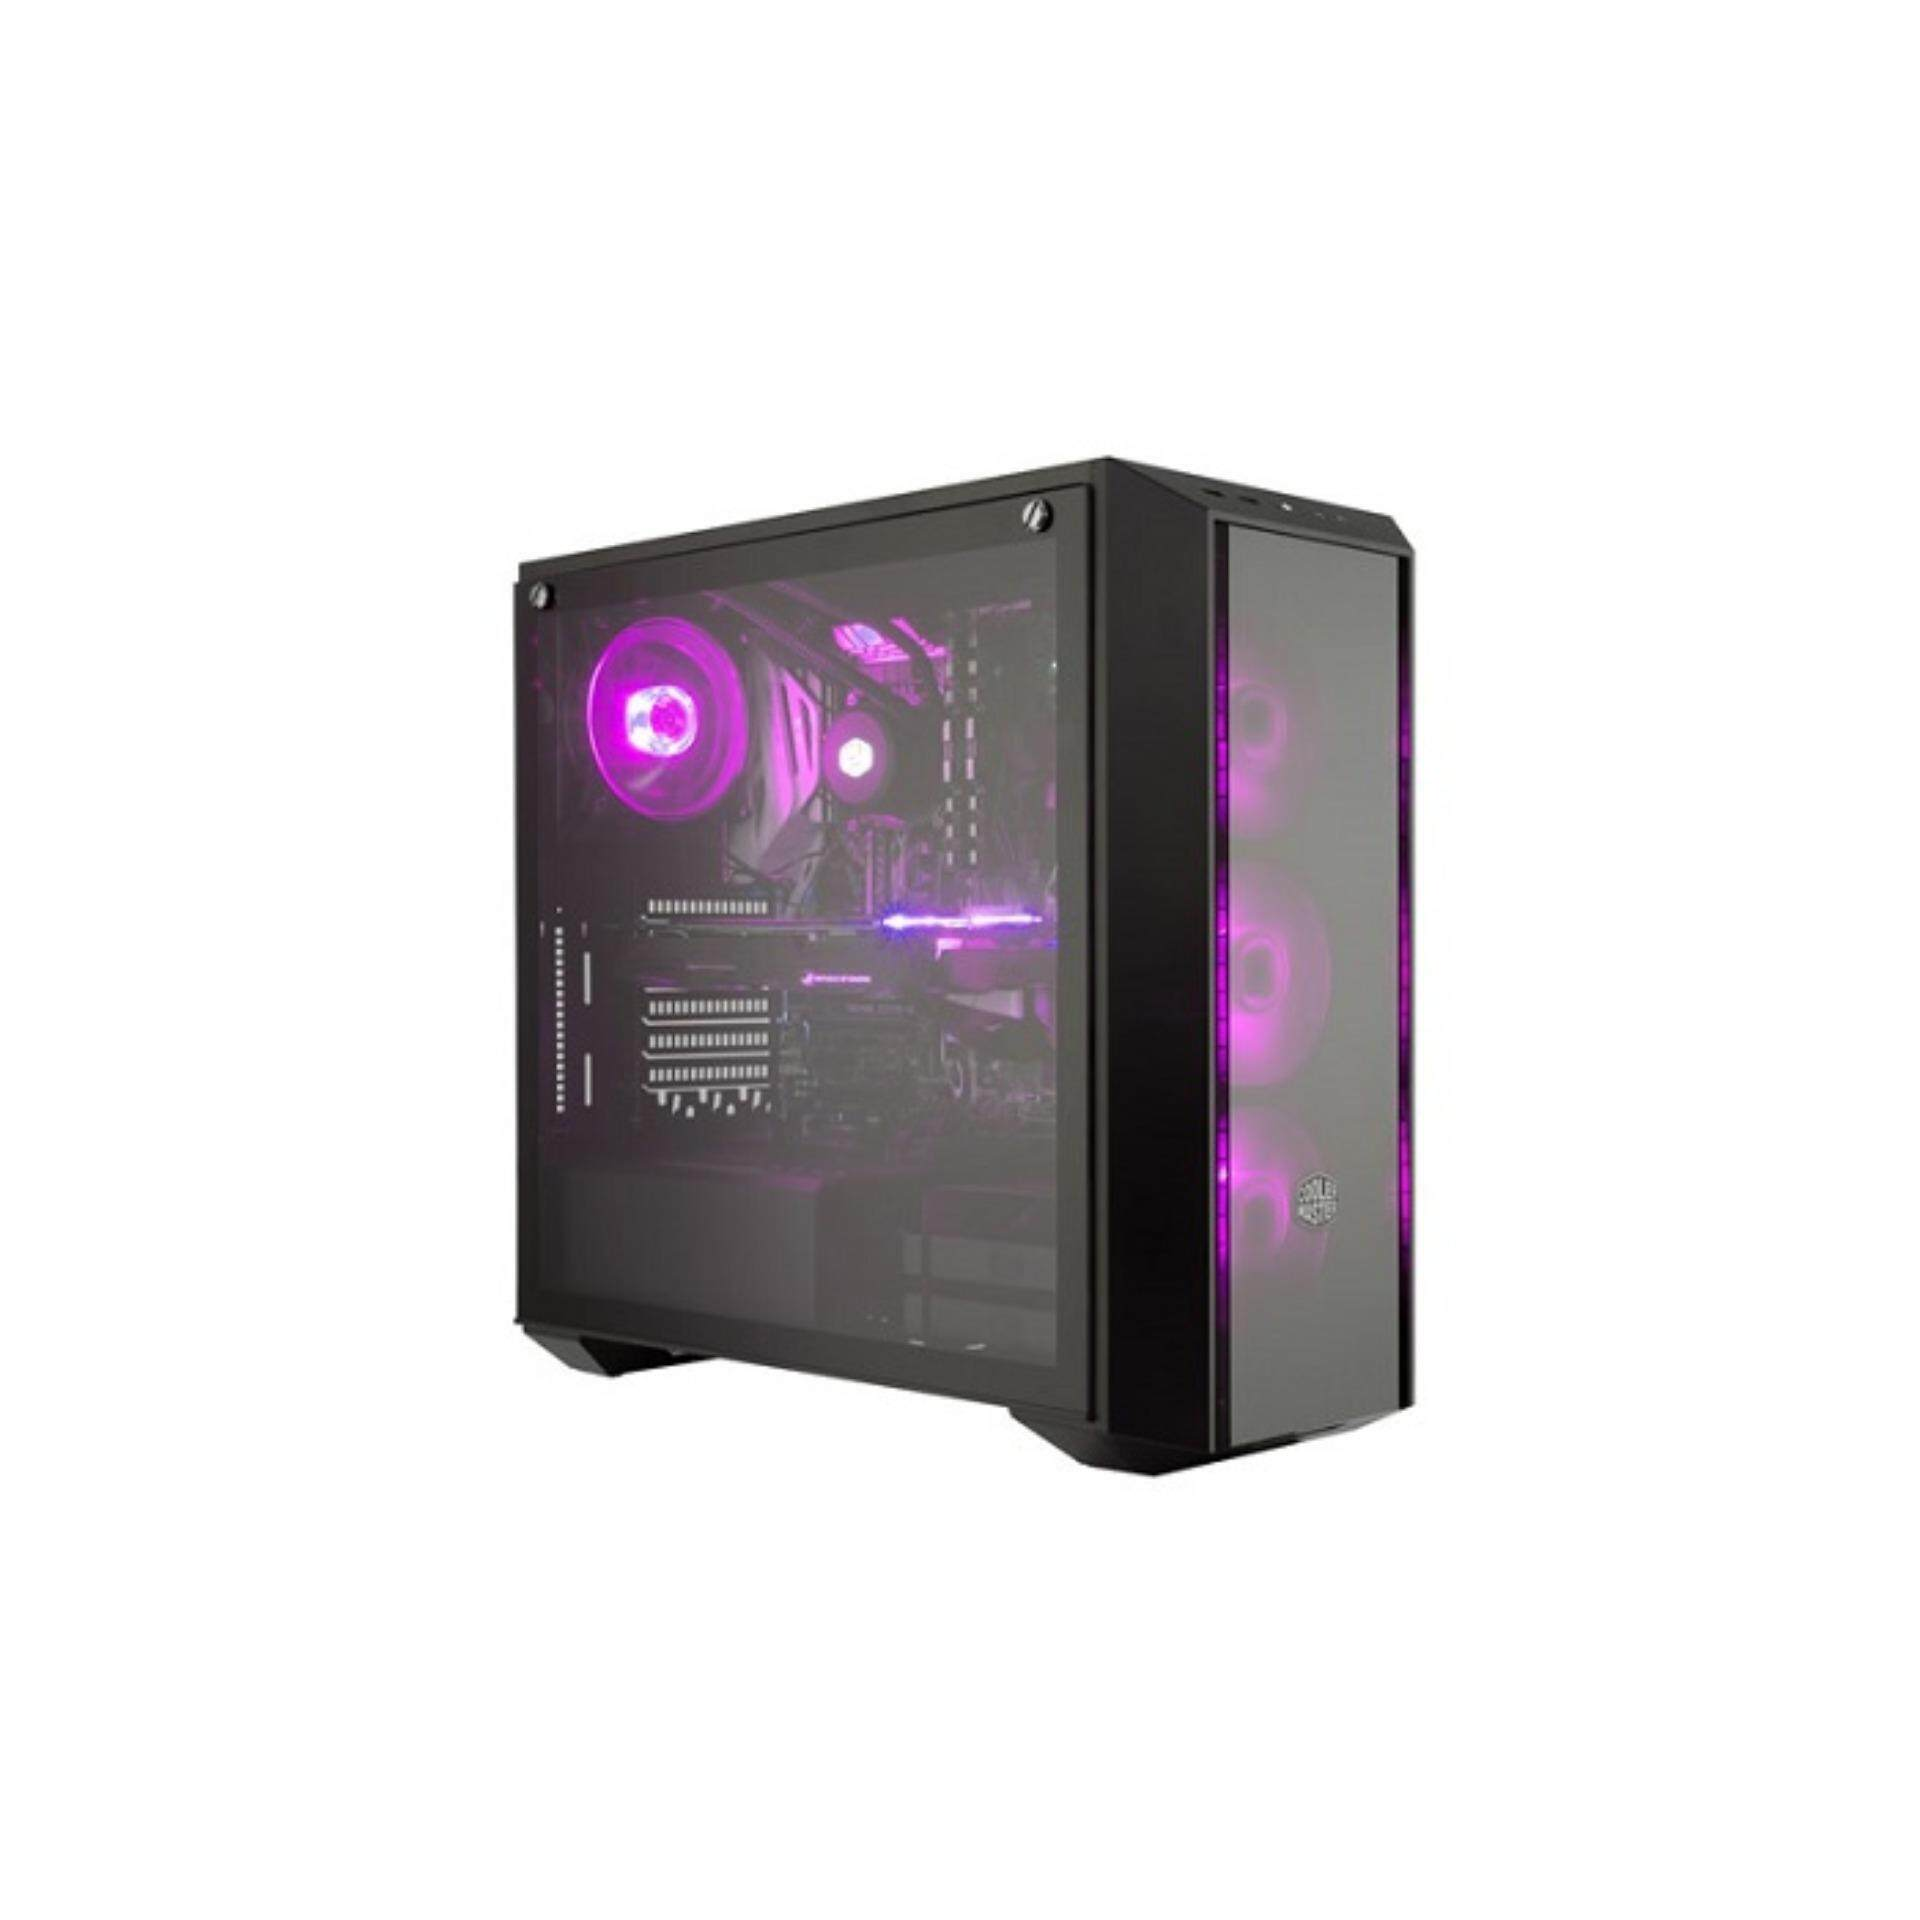 Cm Case Masterbox Pro 5, 2x Usb3.0, Atx, Tempered Glass, 1y By Highgate Technology.